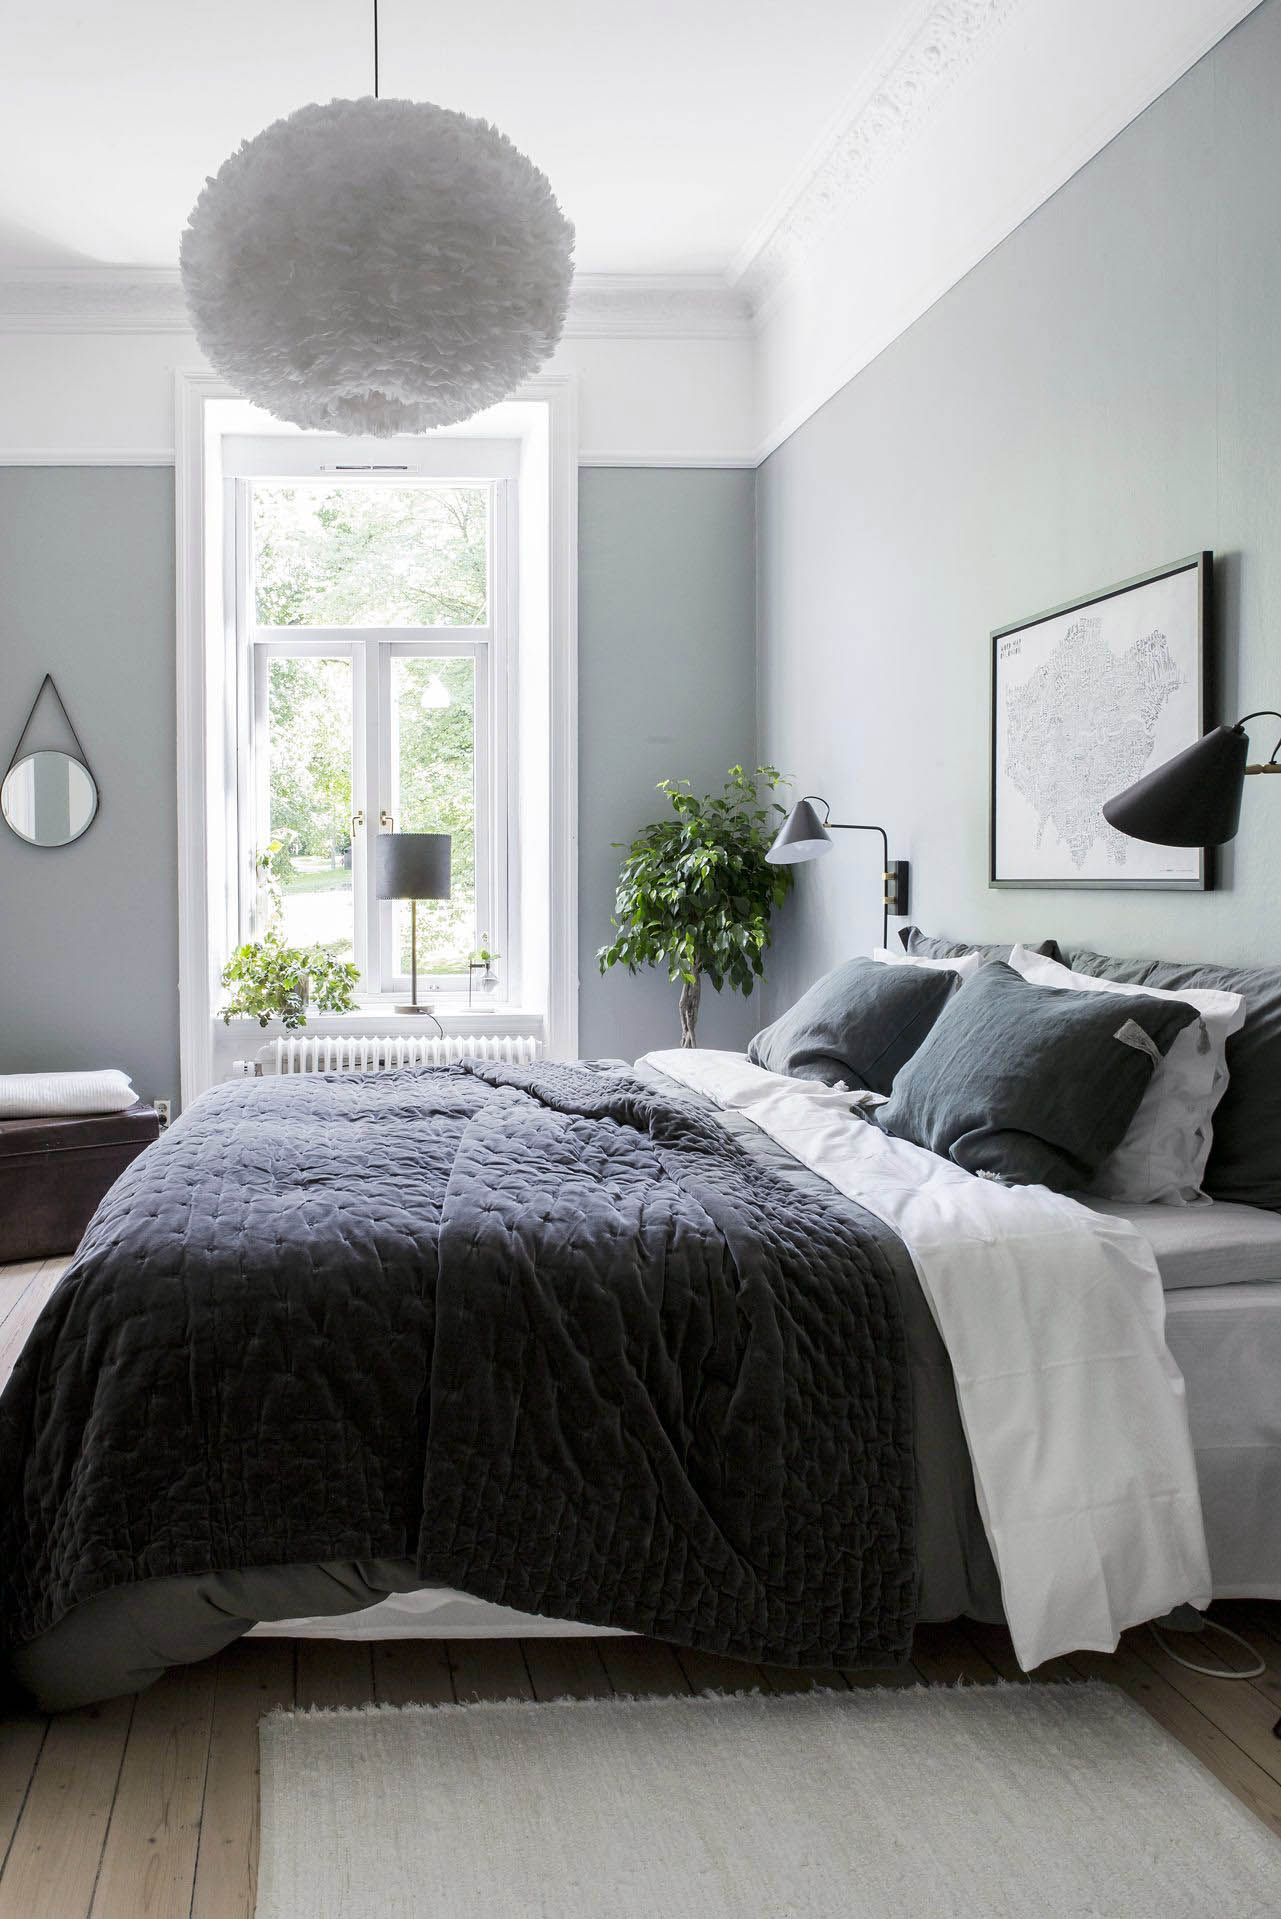 New Master Bedroom Extension Ideas Only In Homesable Com Home Decor Bedroom Bedroom Interior Bedroom Green